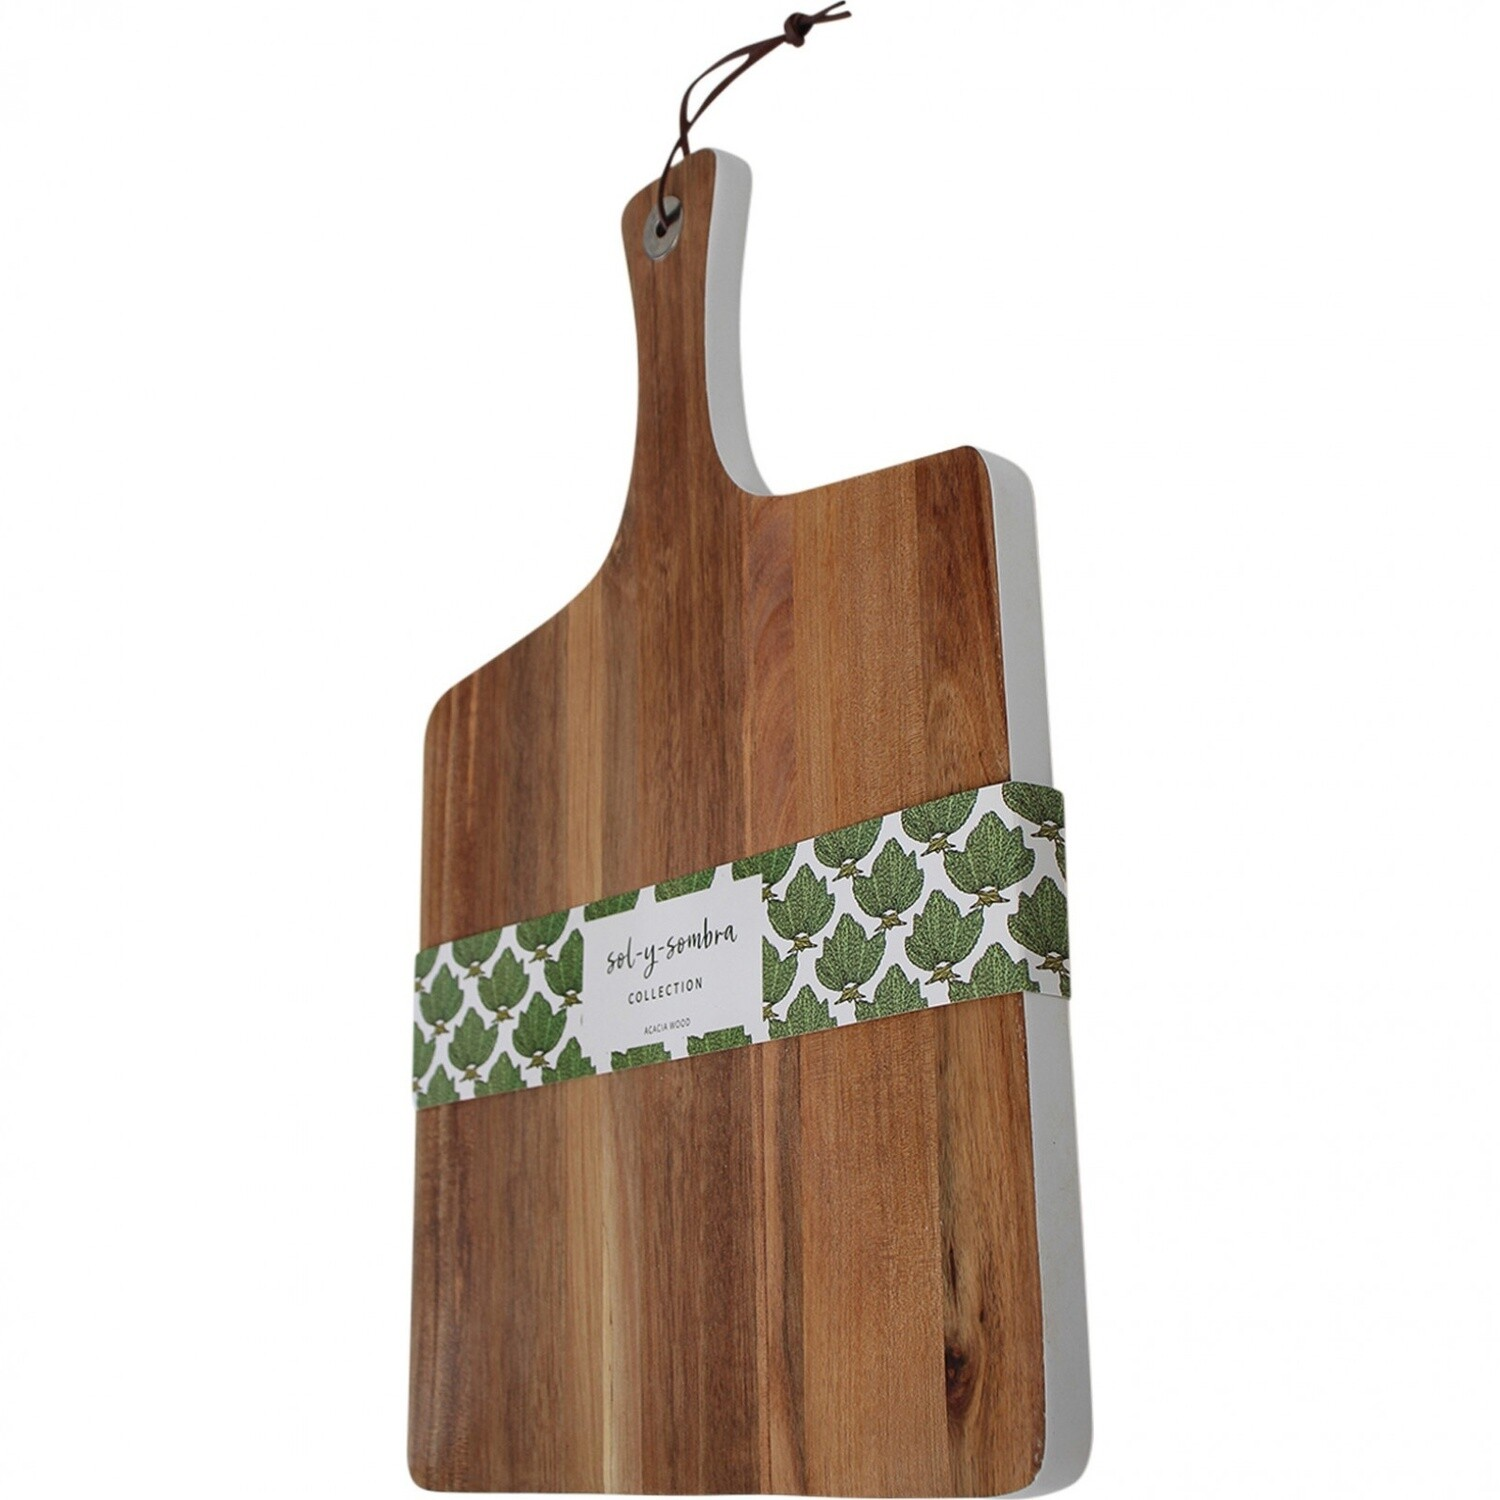 Serving Board Paddle White Edge